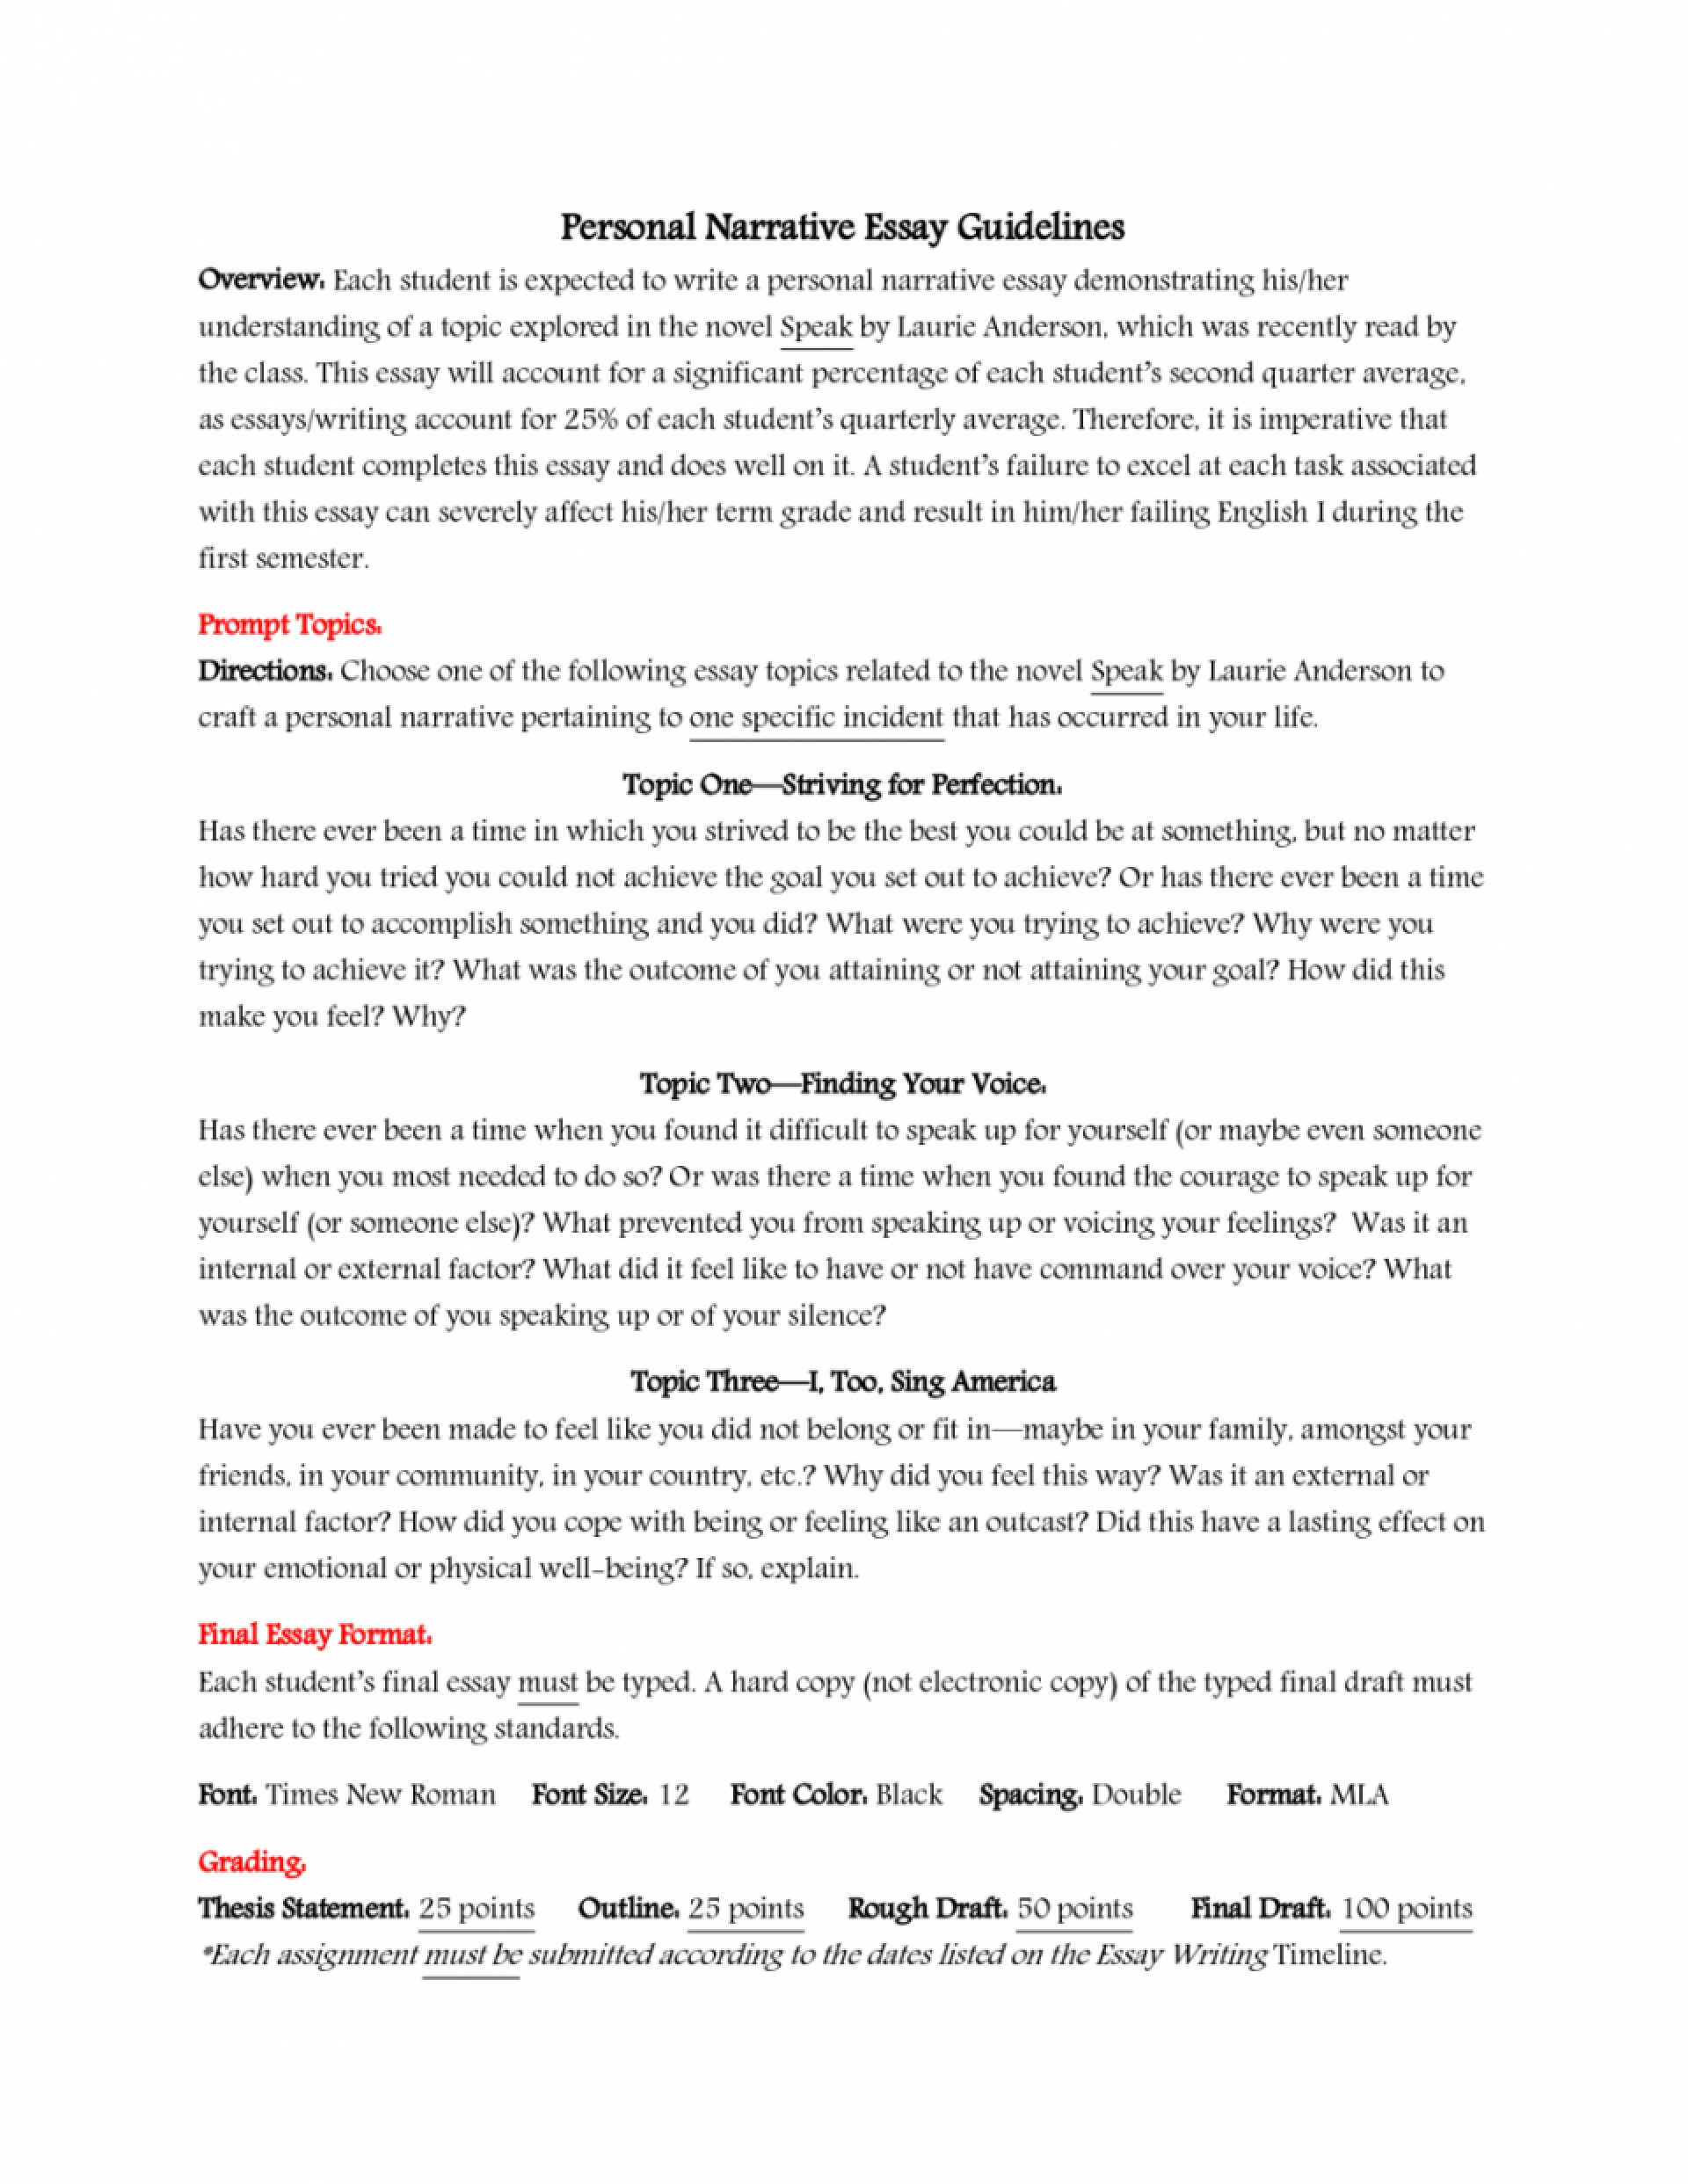 020 Example Of High Schoolsearch Paper Essay Template Writing Format For Students Great Essays Free Online Scholarships Practice Pdf Courses Contests Topics Activities Programs 960x1242 Amazing School Research Sample Senior In The Philippines Examples Thesis Statements Papers 1920